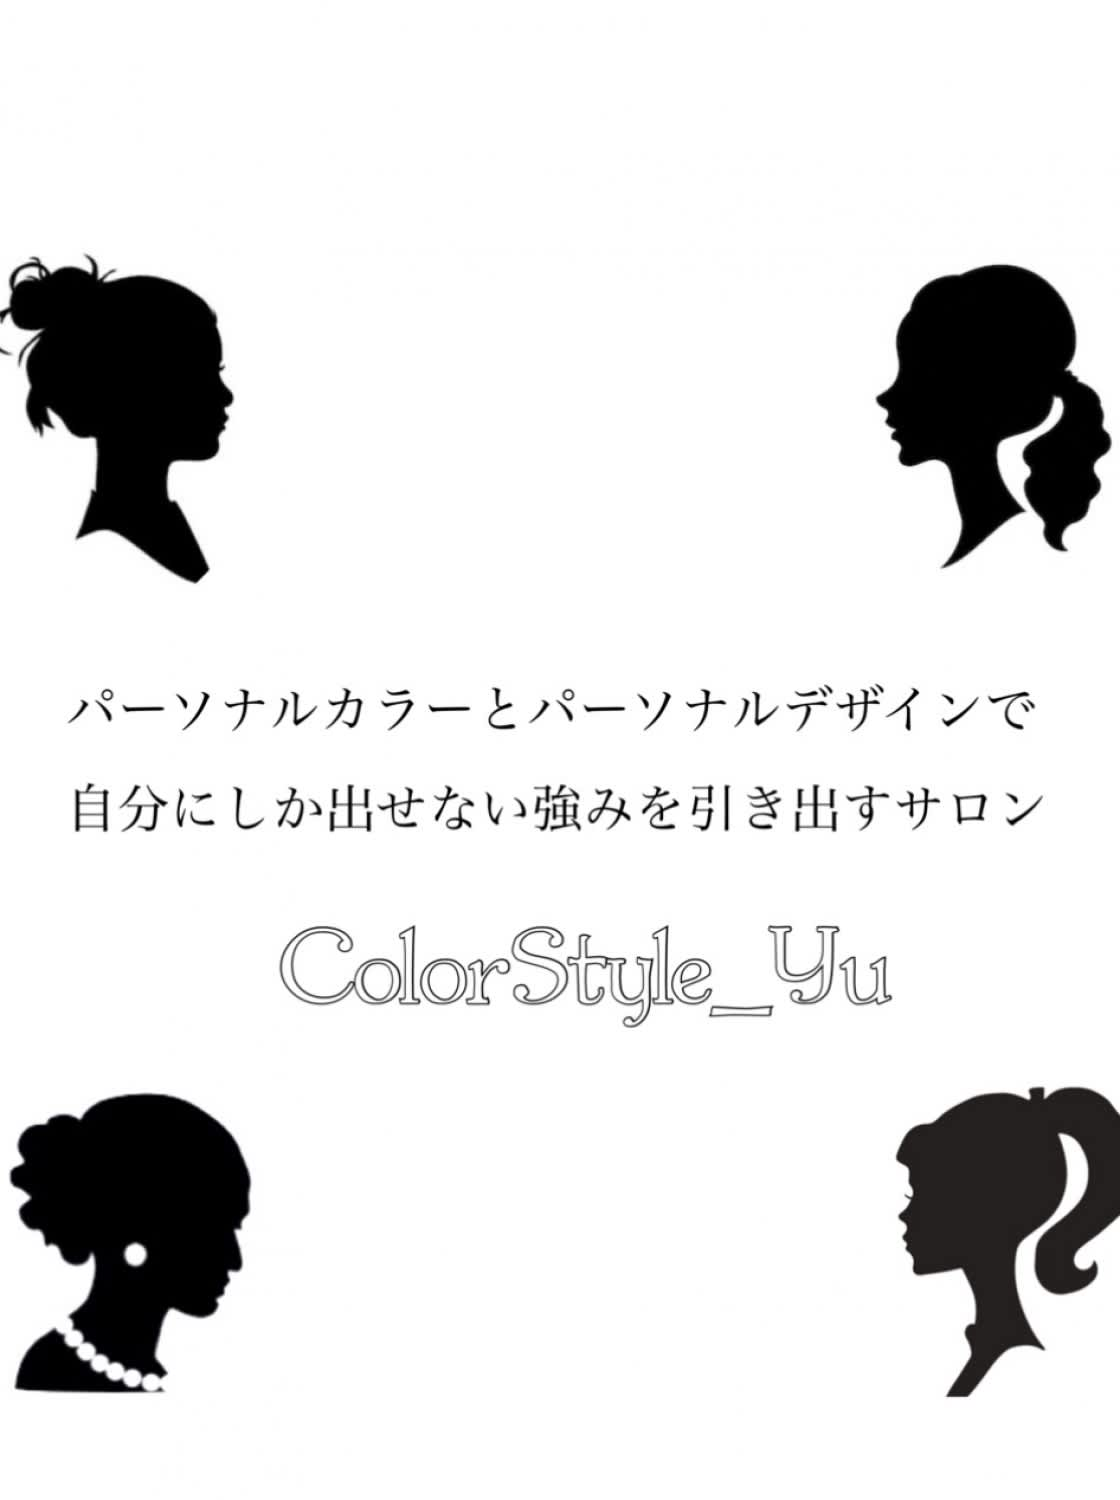 ColorStyle_YU